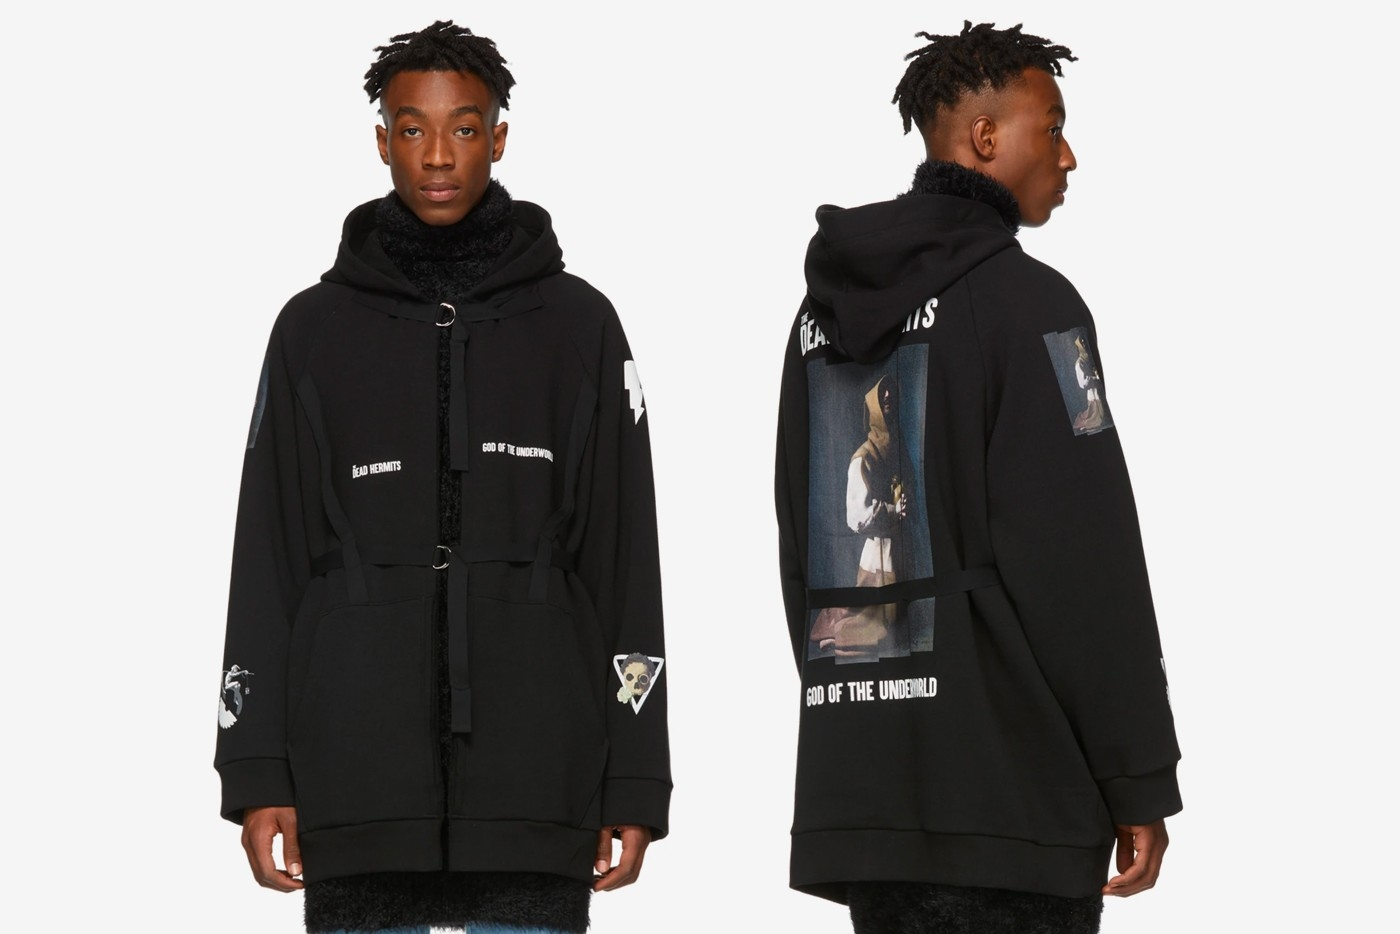 https___hypebeast.com_image_2019_03_undercover-ss19-dead-hermits-vlads-release-002.jpg